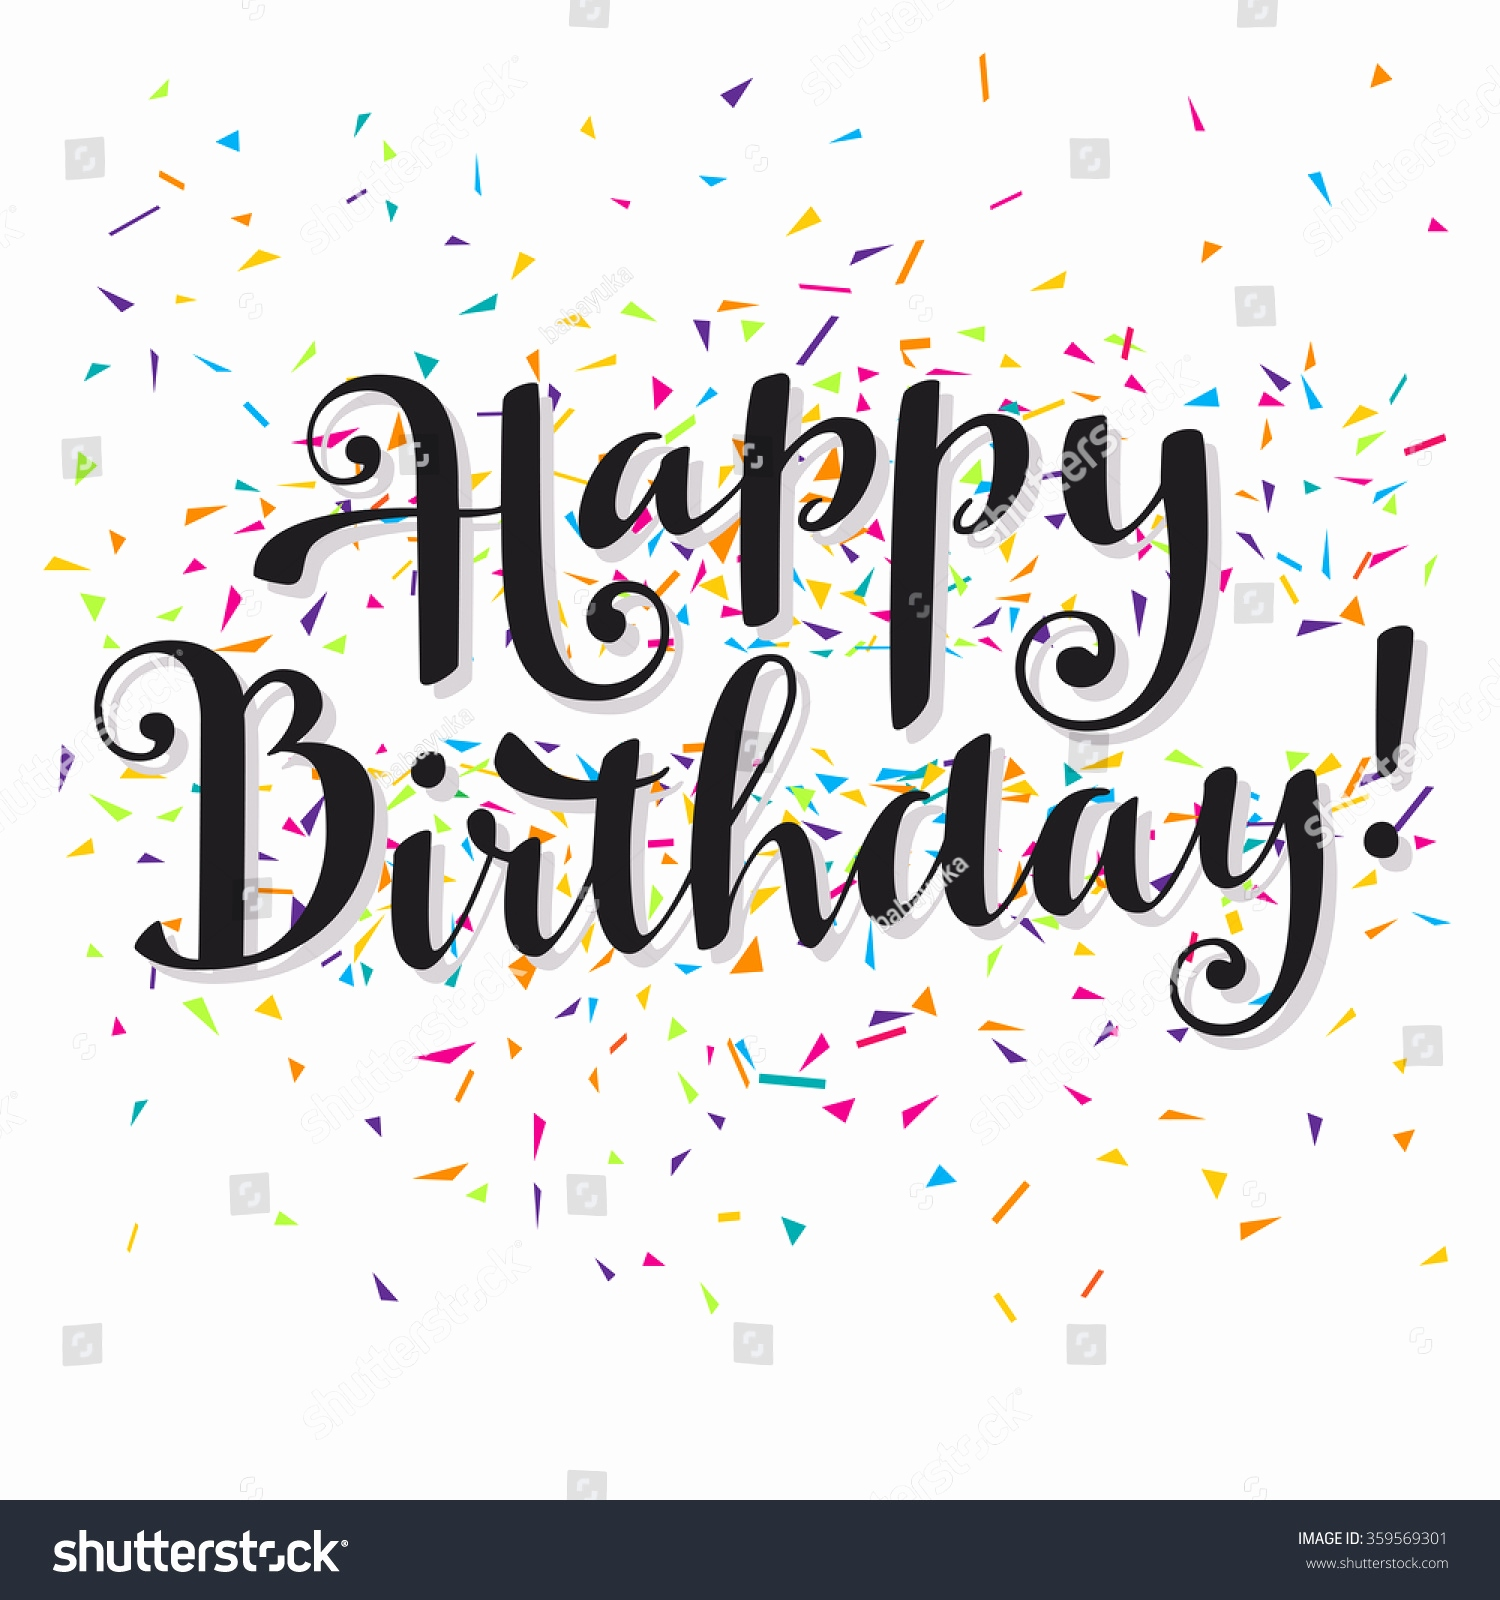 happy birthday modern ; modern-happy-birthday-wishes-awesome-vector-hand-written-happy-birthday-greeting-stock-vector-of-modern-happy-birthday-wishes